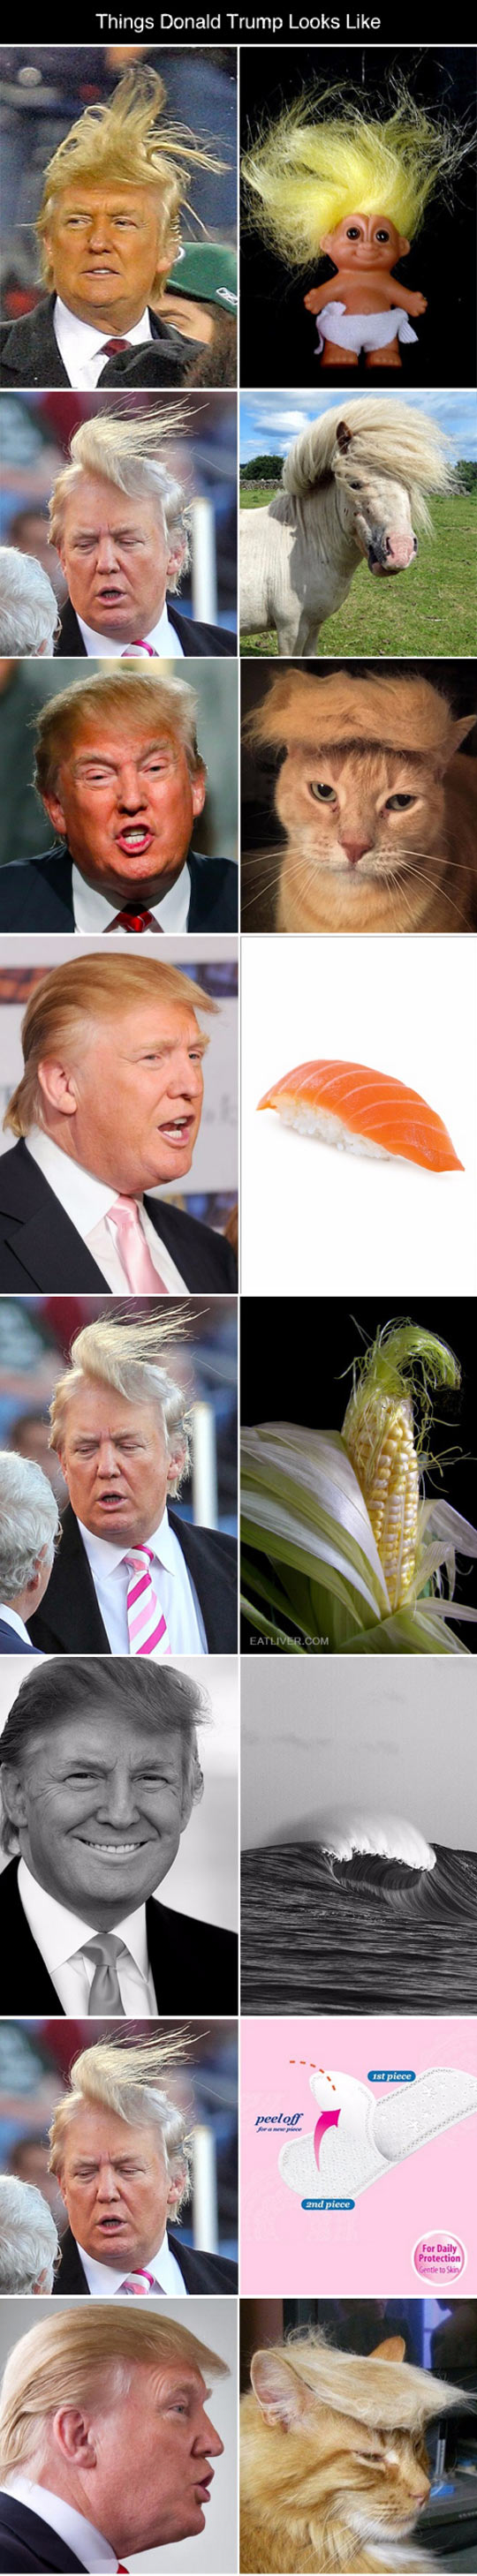 funny-Donald-Trump-hair-looking-like-things